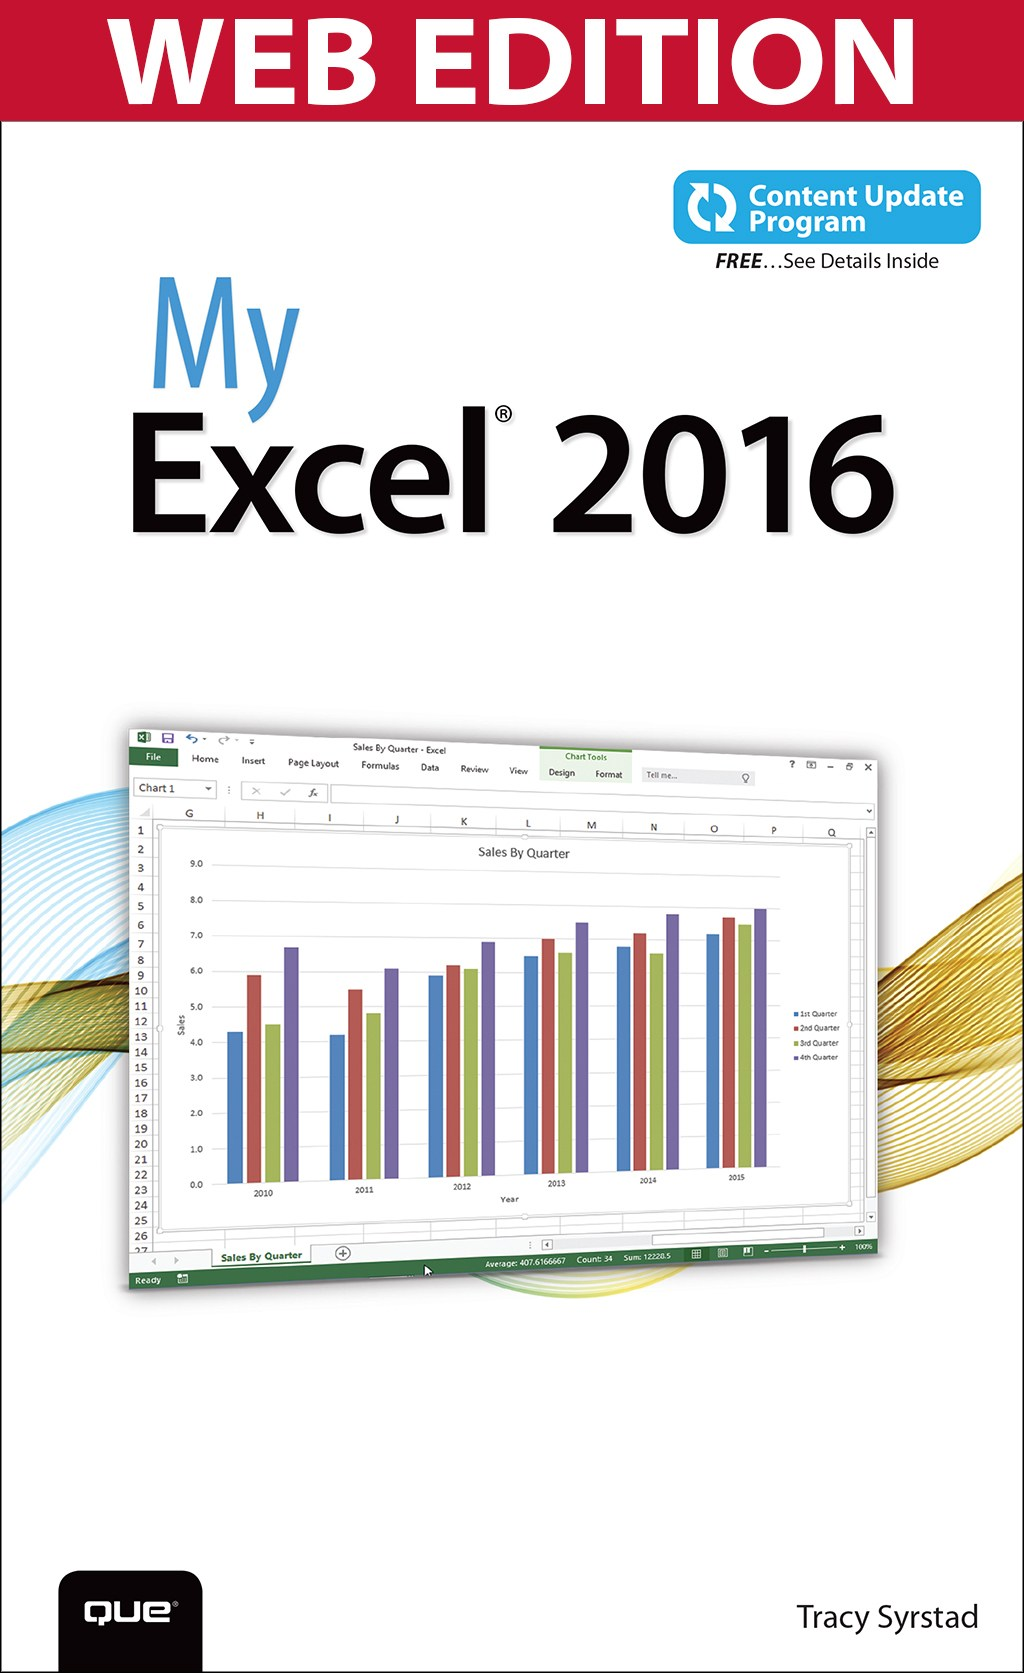 My Excel 2016 (Web Edition with Content Update Program)